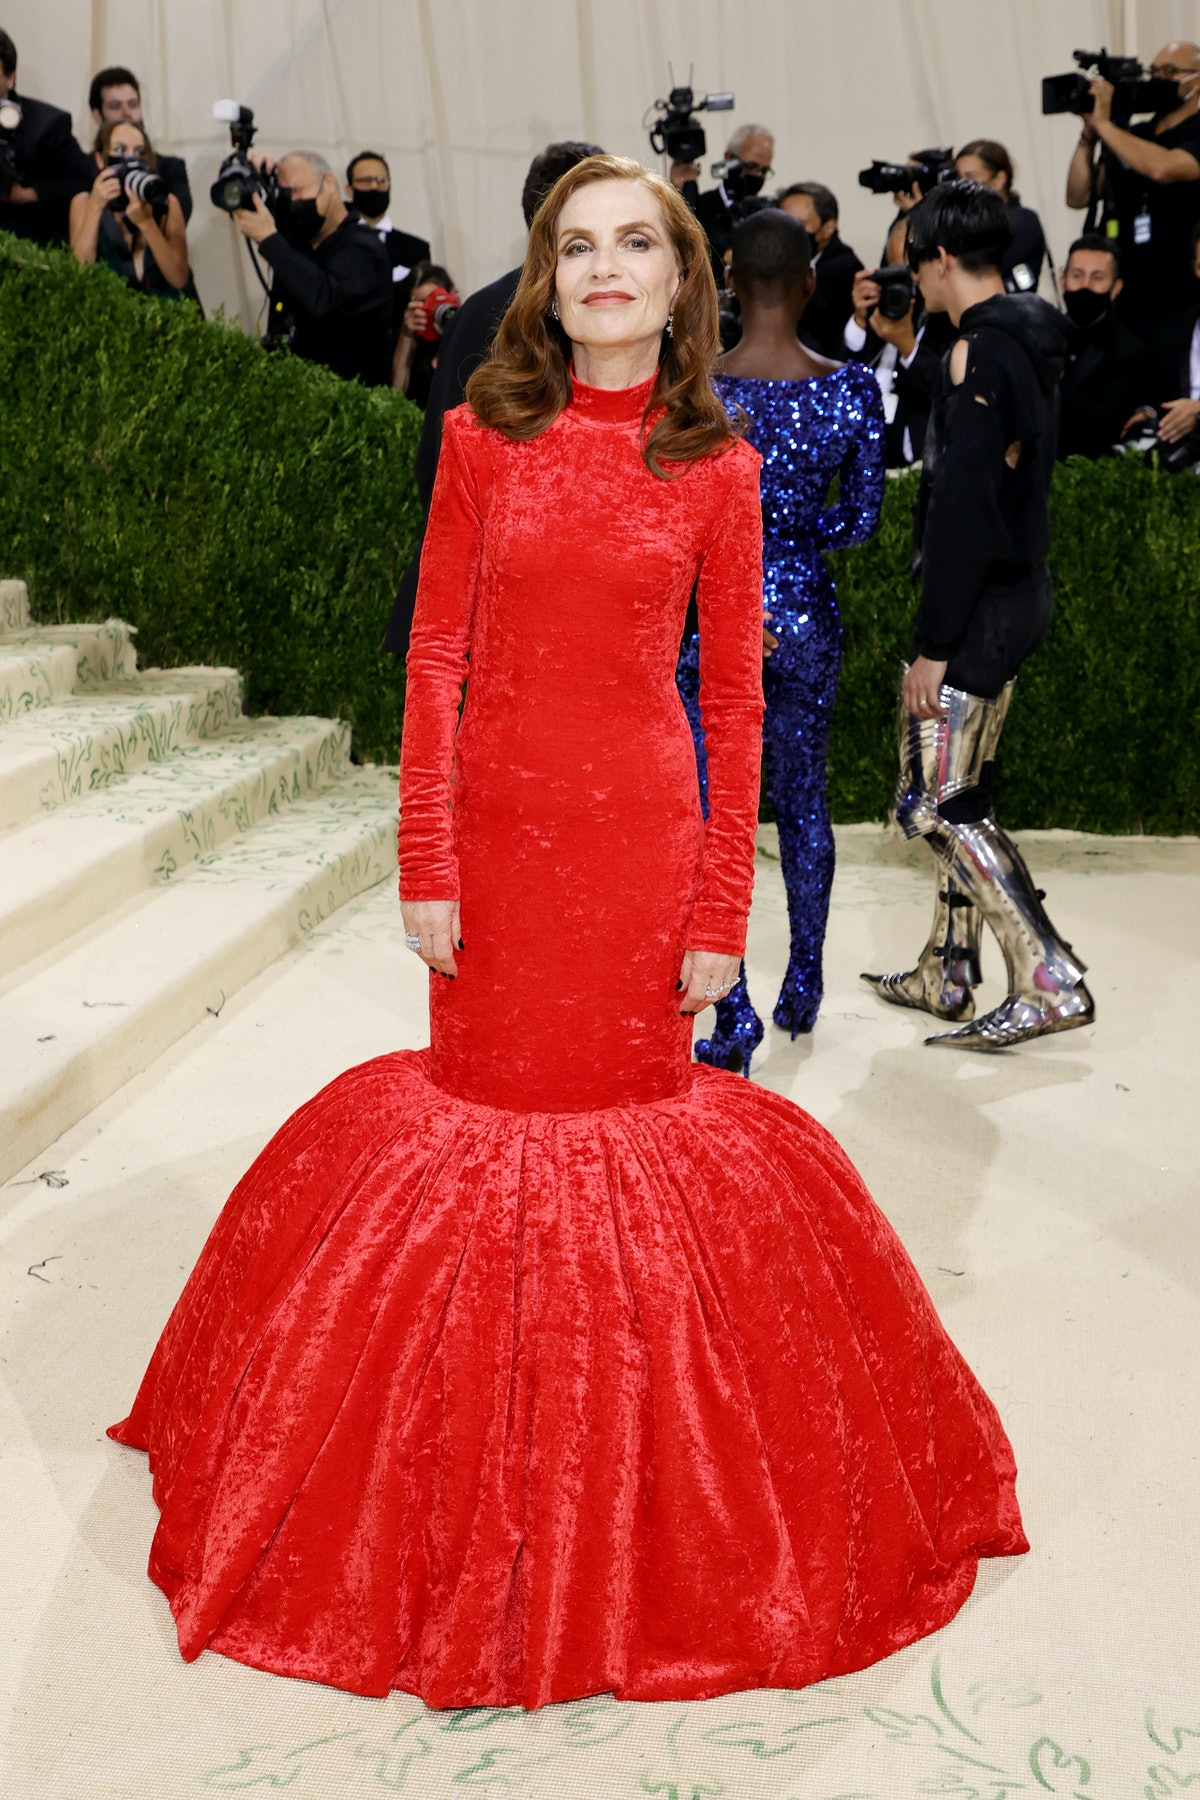 sabelle Huppert attends The 2021 Met Gala Celebrating In America: A Lexicon Of Fashion at Metropolit...